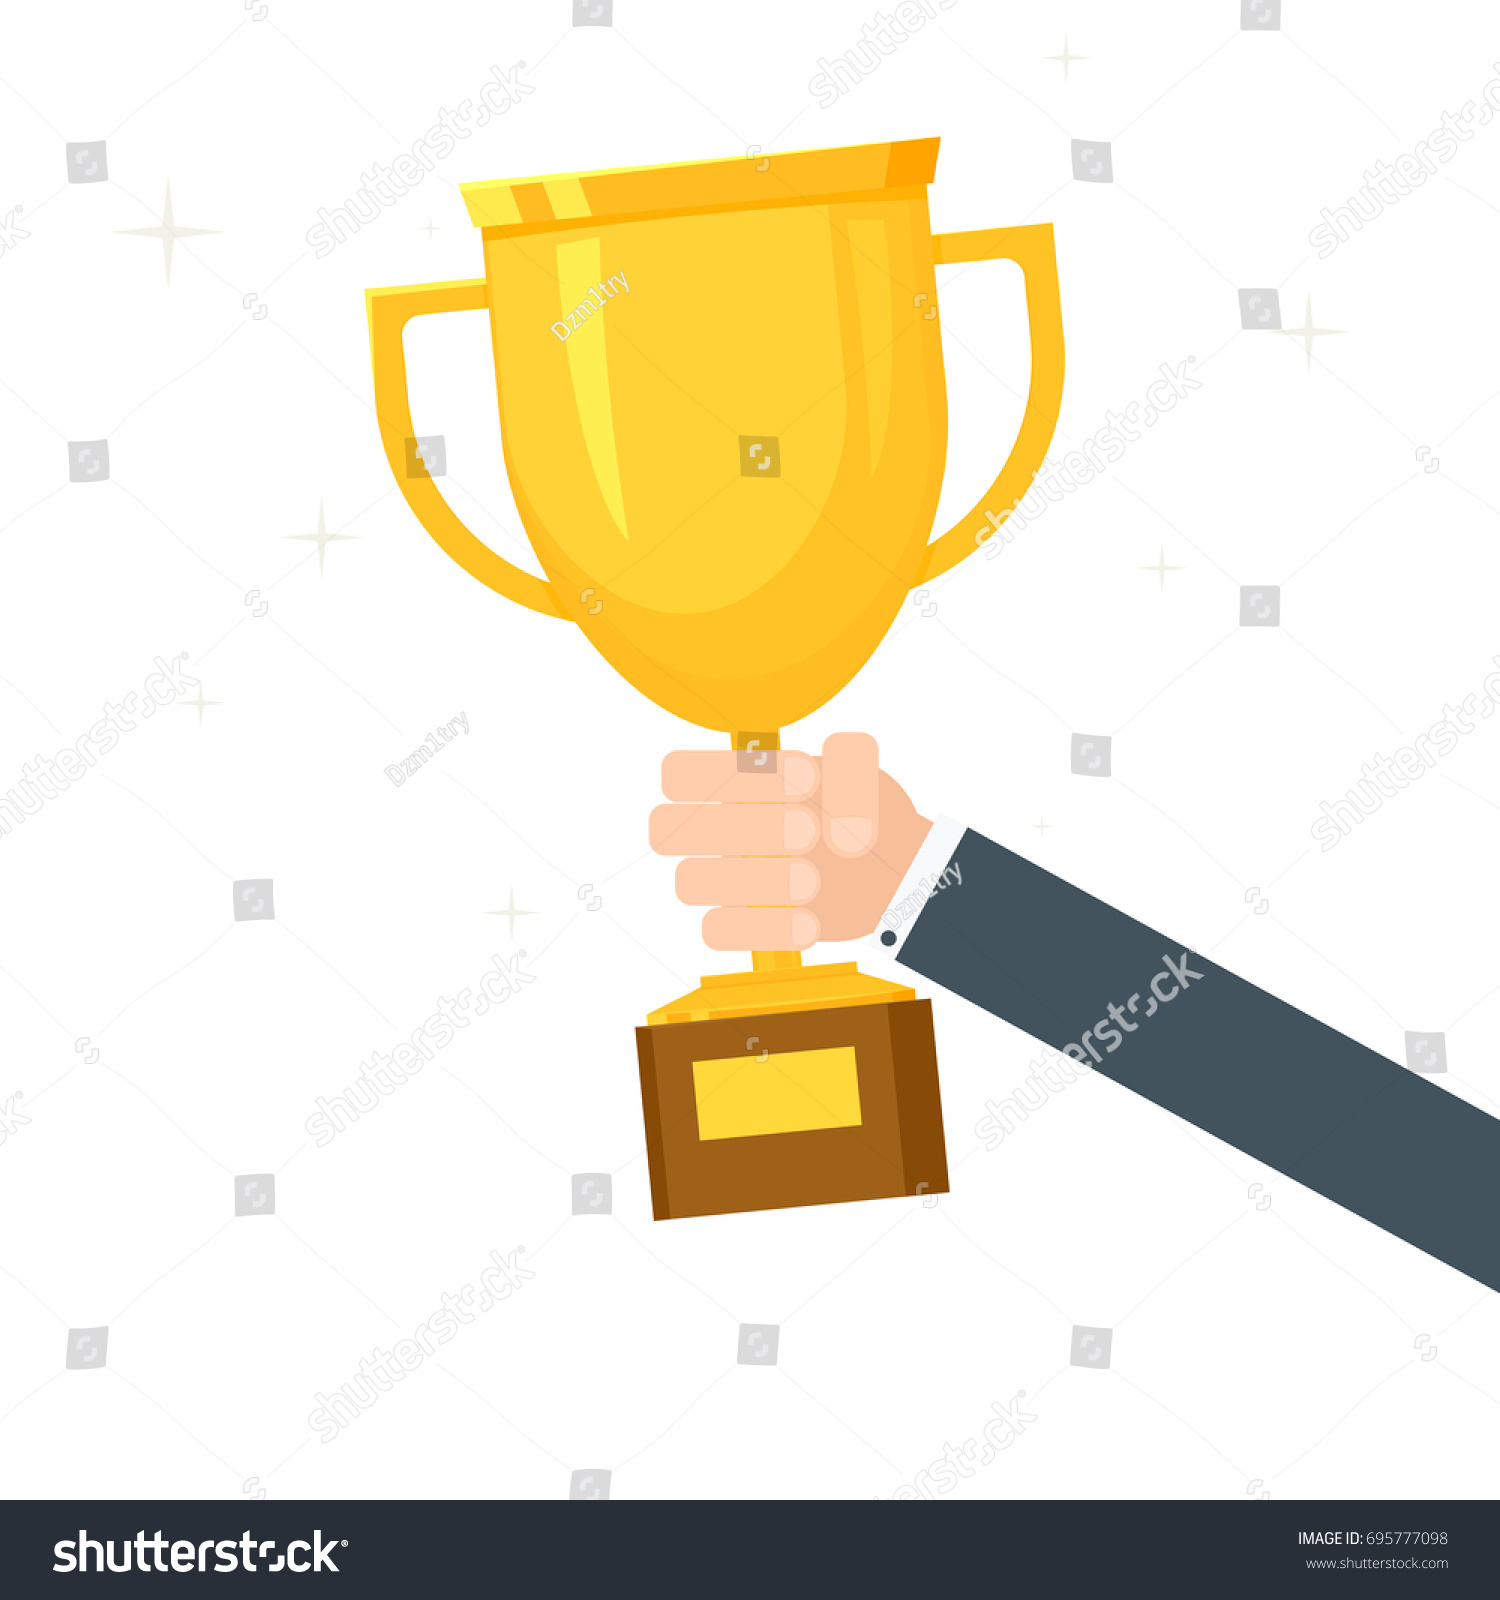 hight resolution of hand holding trophy clipart image isolated on white background